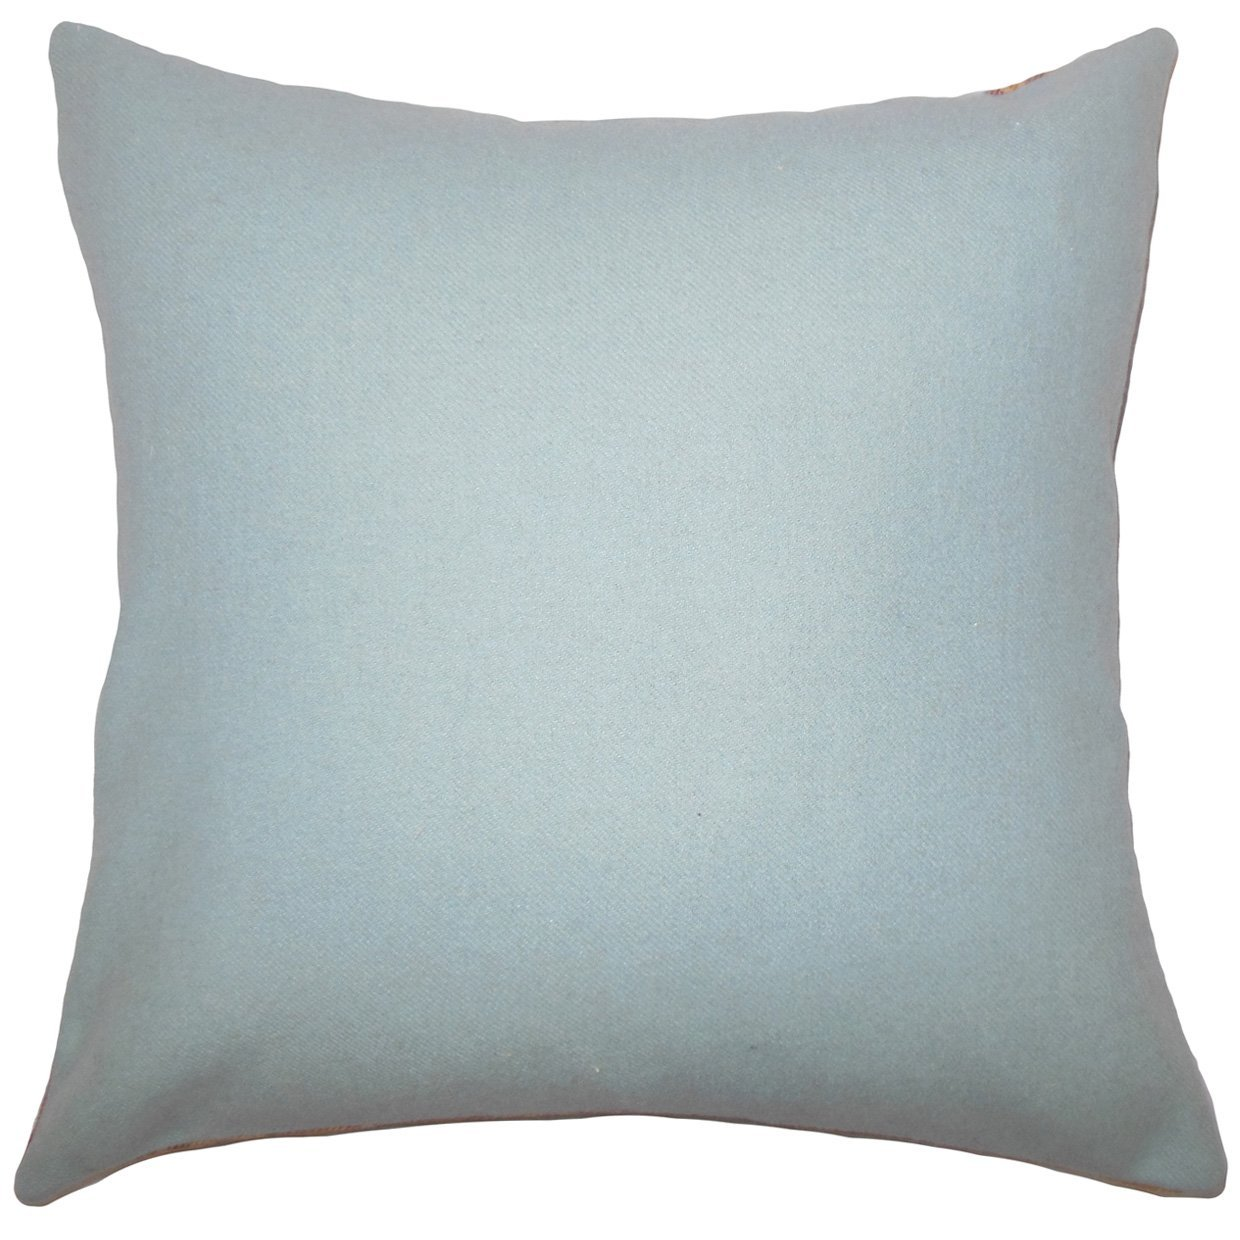 The Pillow Collection Yandel Solid Bedding Sham Blue King/20' x 36'